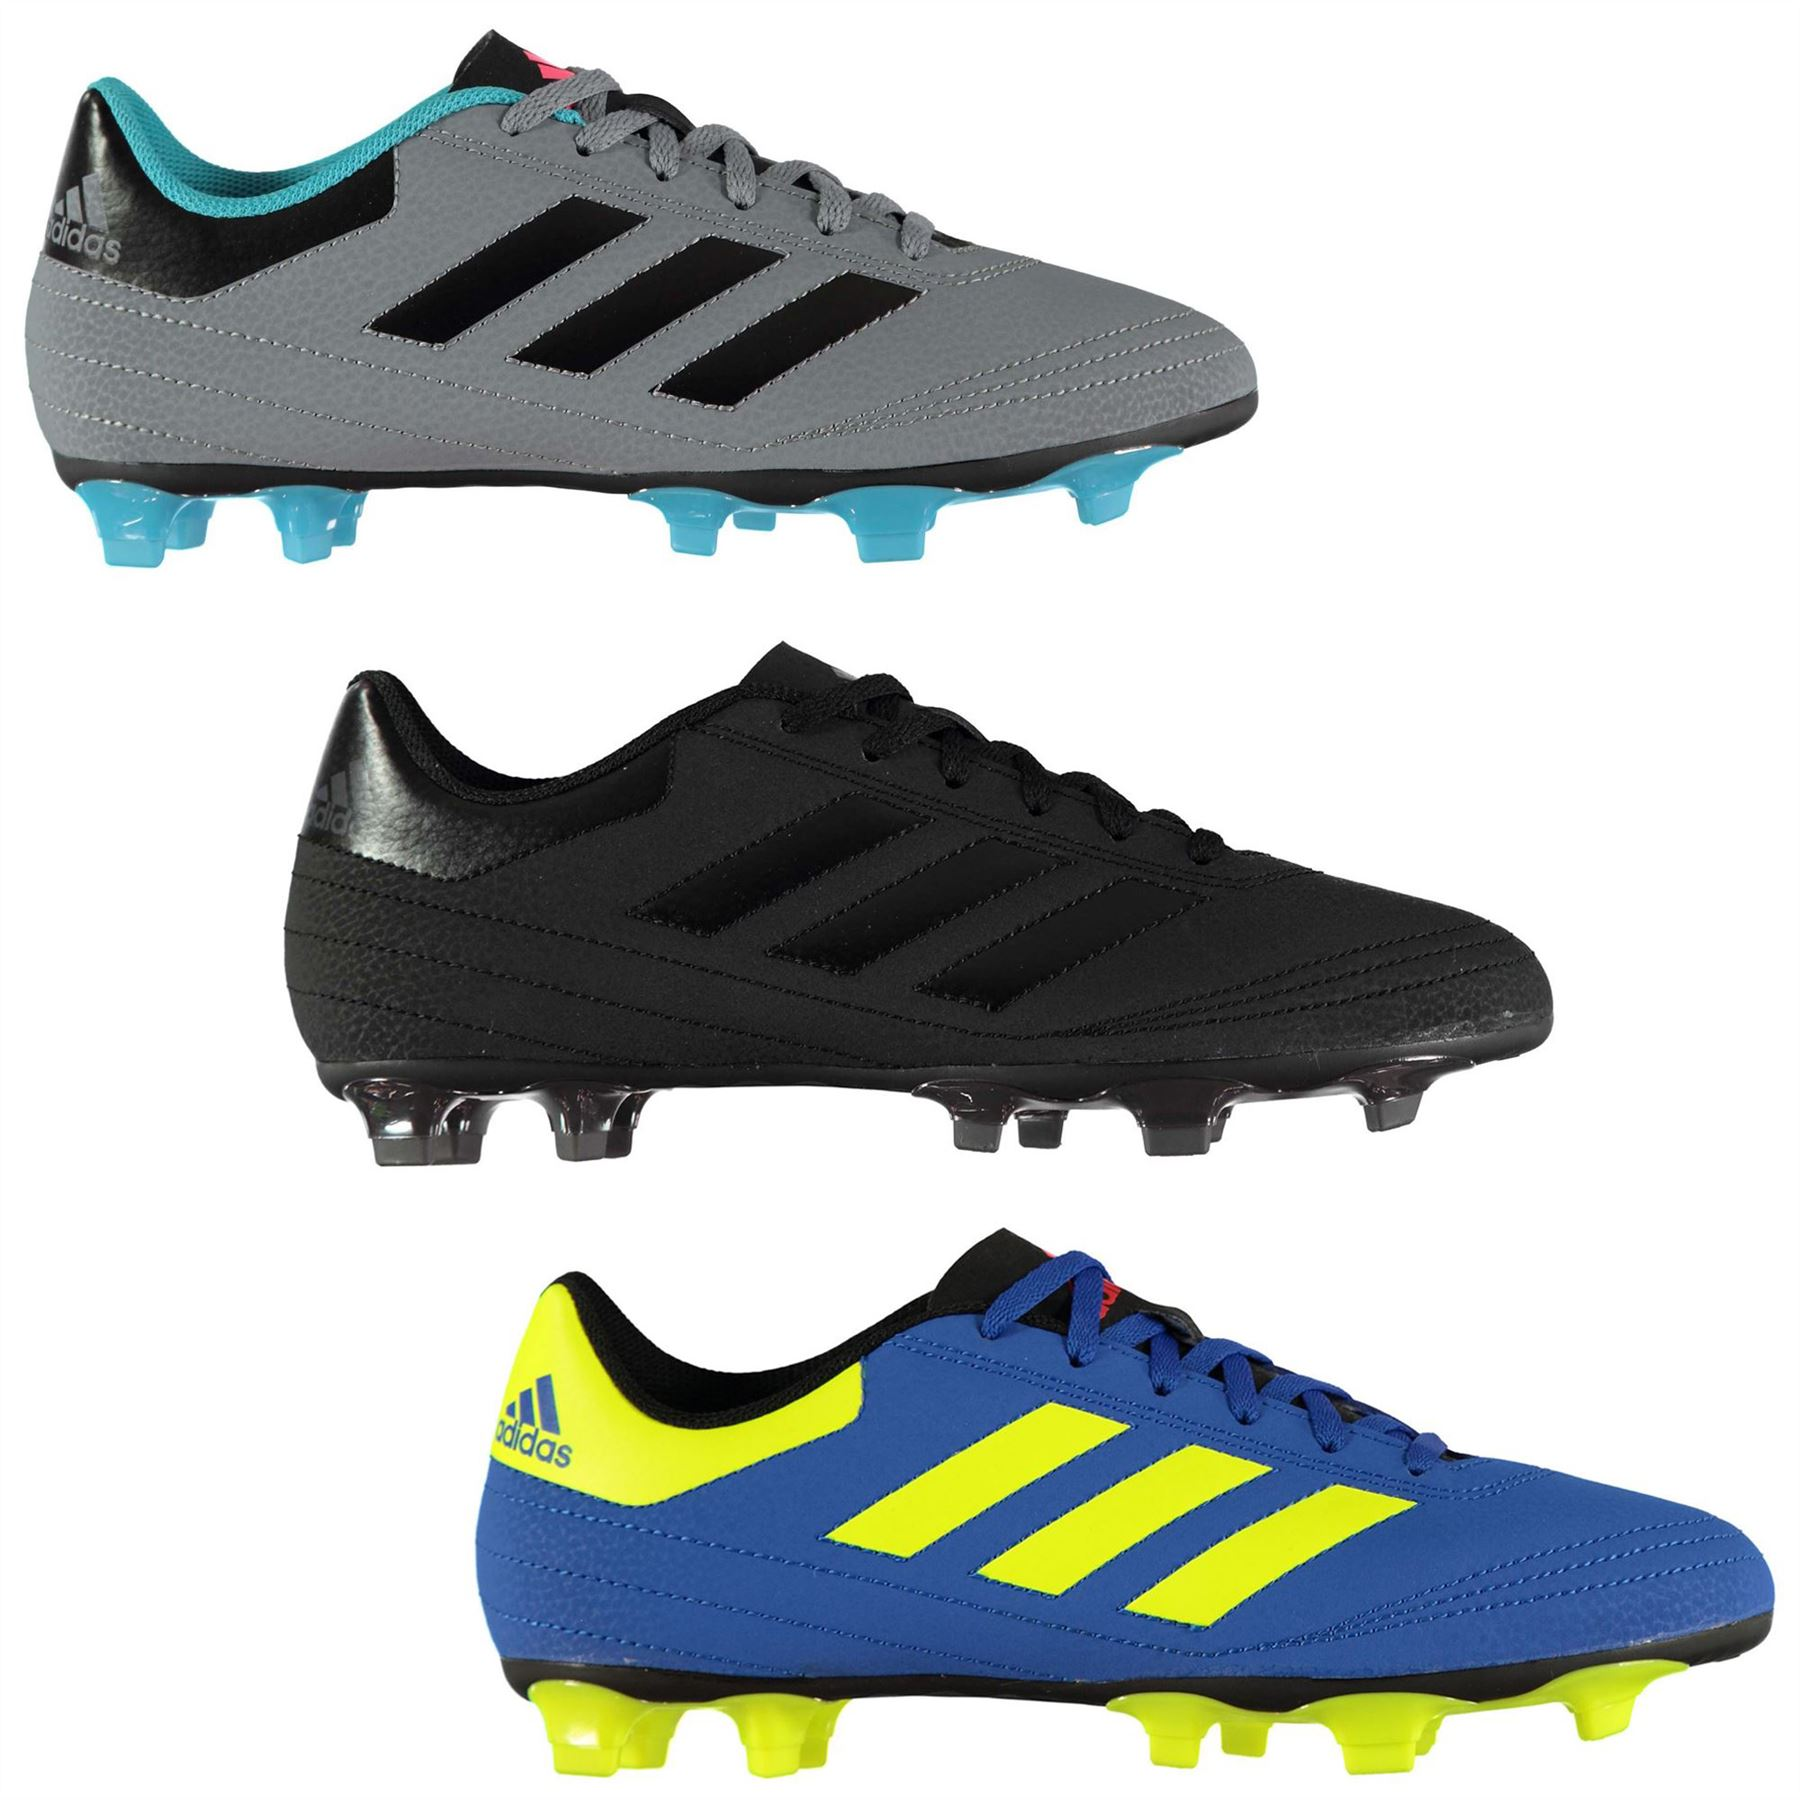 ... adidas Goletto Firm Ground Football Boots Mens Soccer Shoes Cleats ... 6e49ed58cdc67